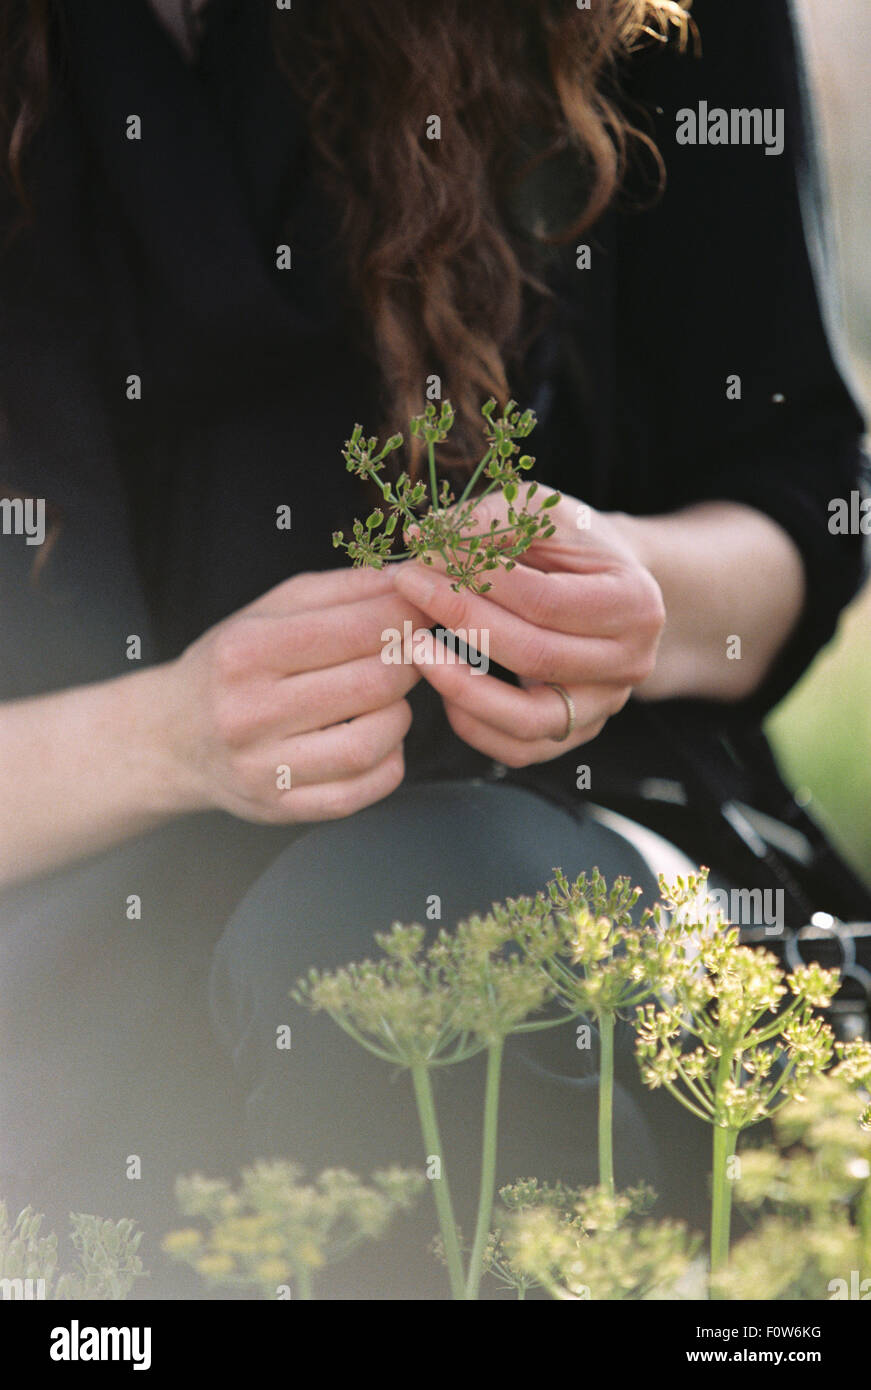 A woman picking wild flowers. - Stock Image